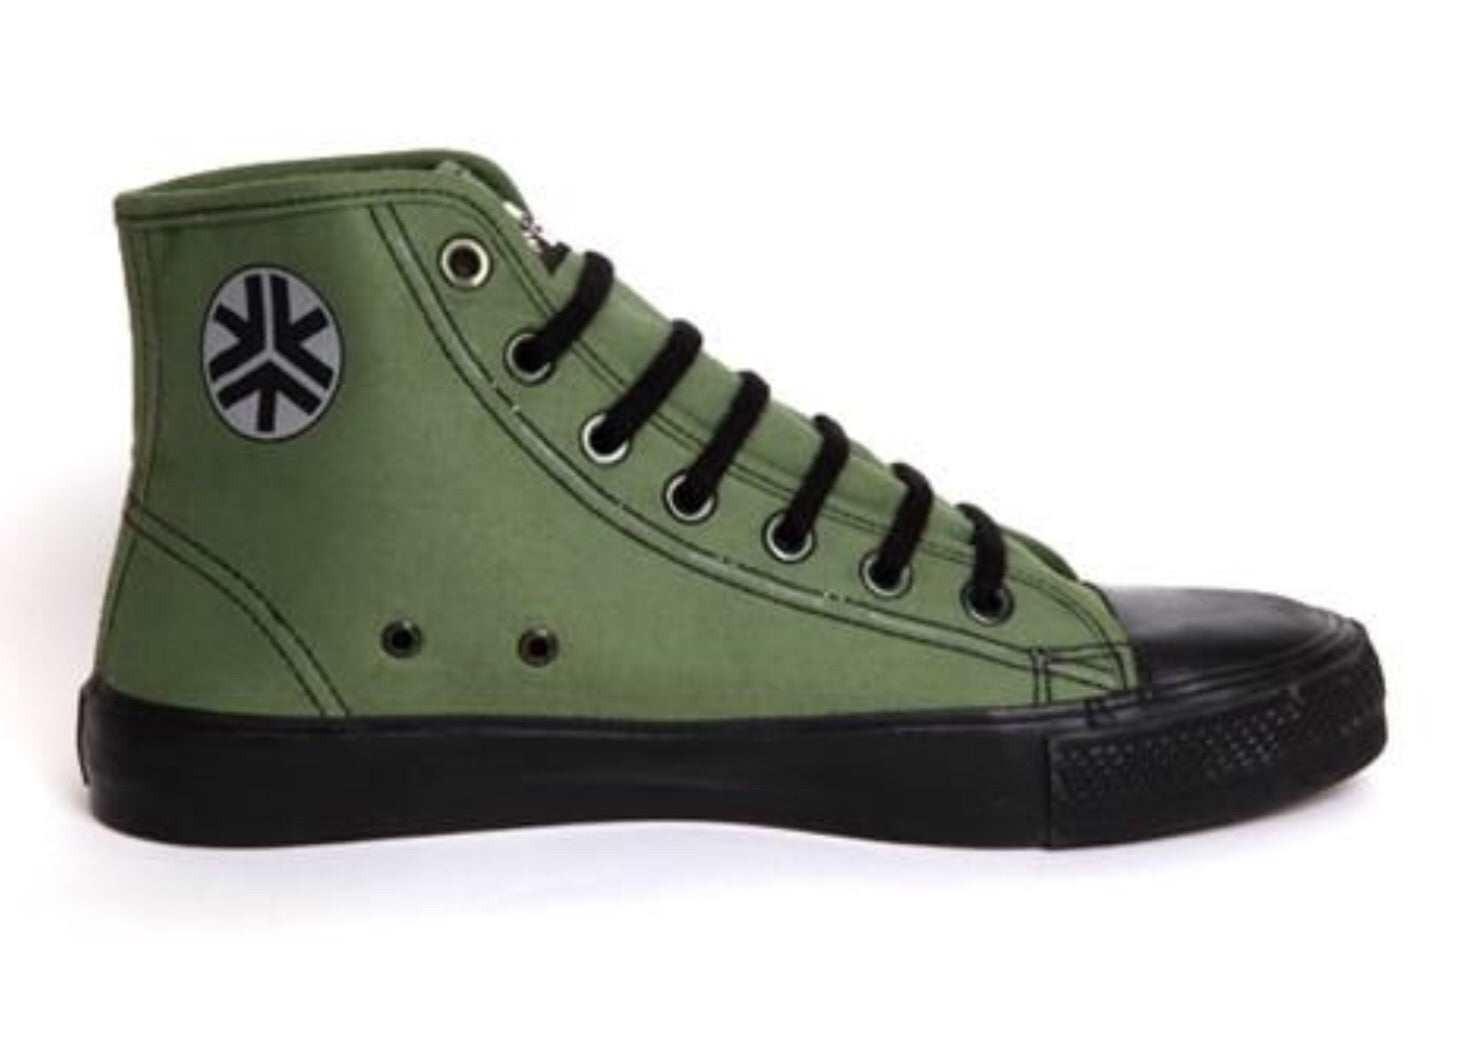 Etiko Fairtrade Hi Top Olive Black Sneakers